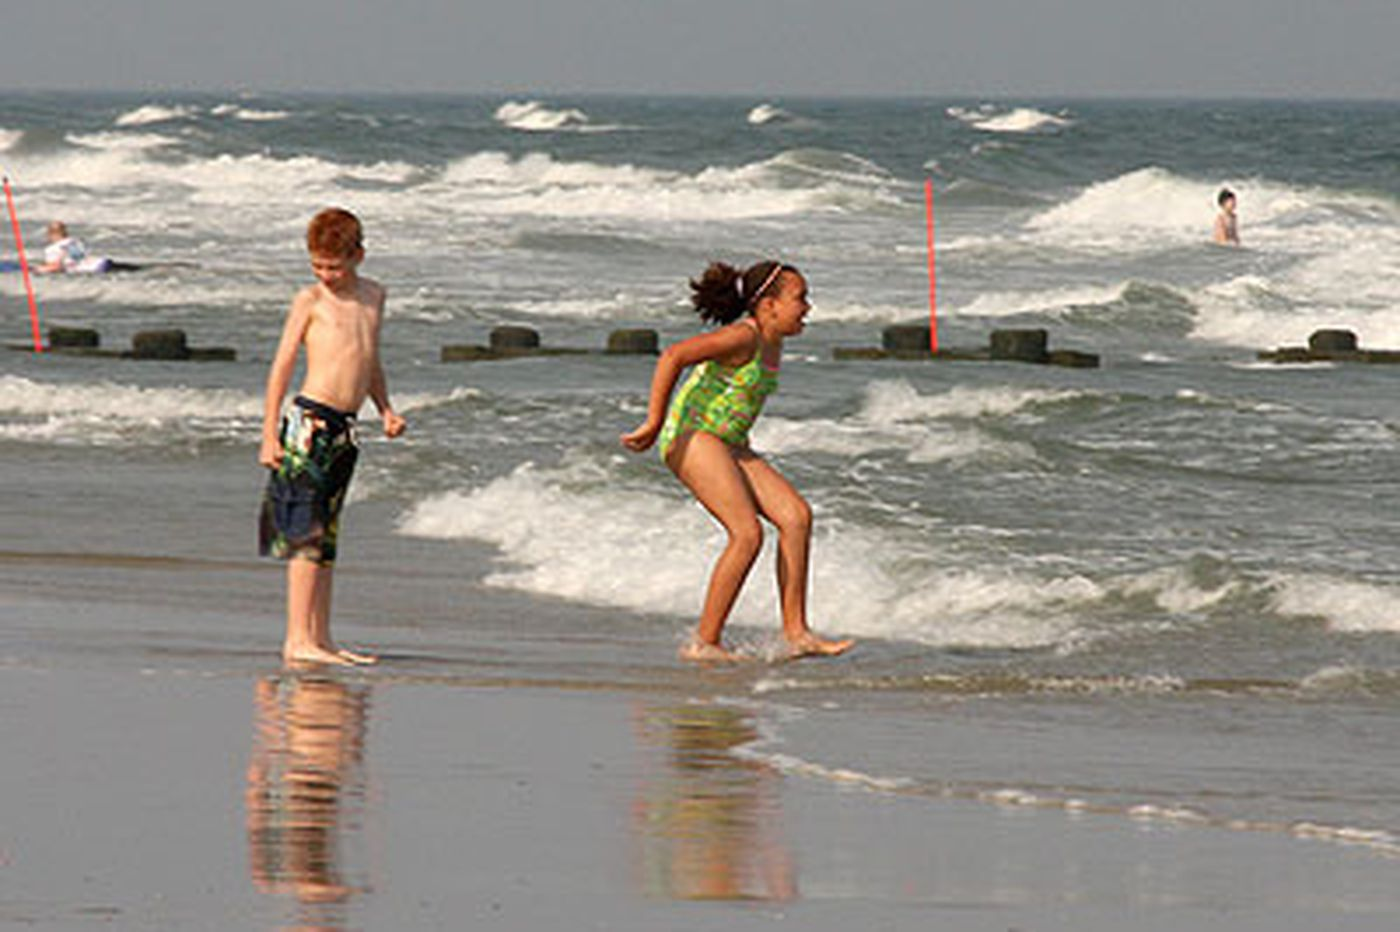 New Jersey Shore communities scrape to keep visitor services